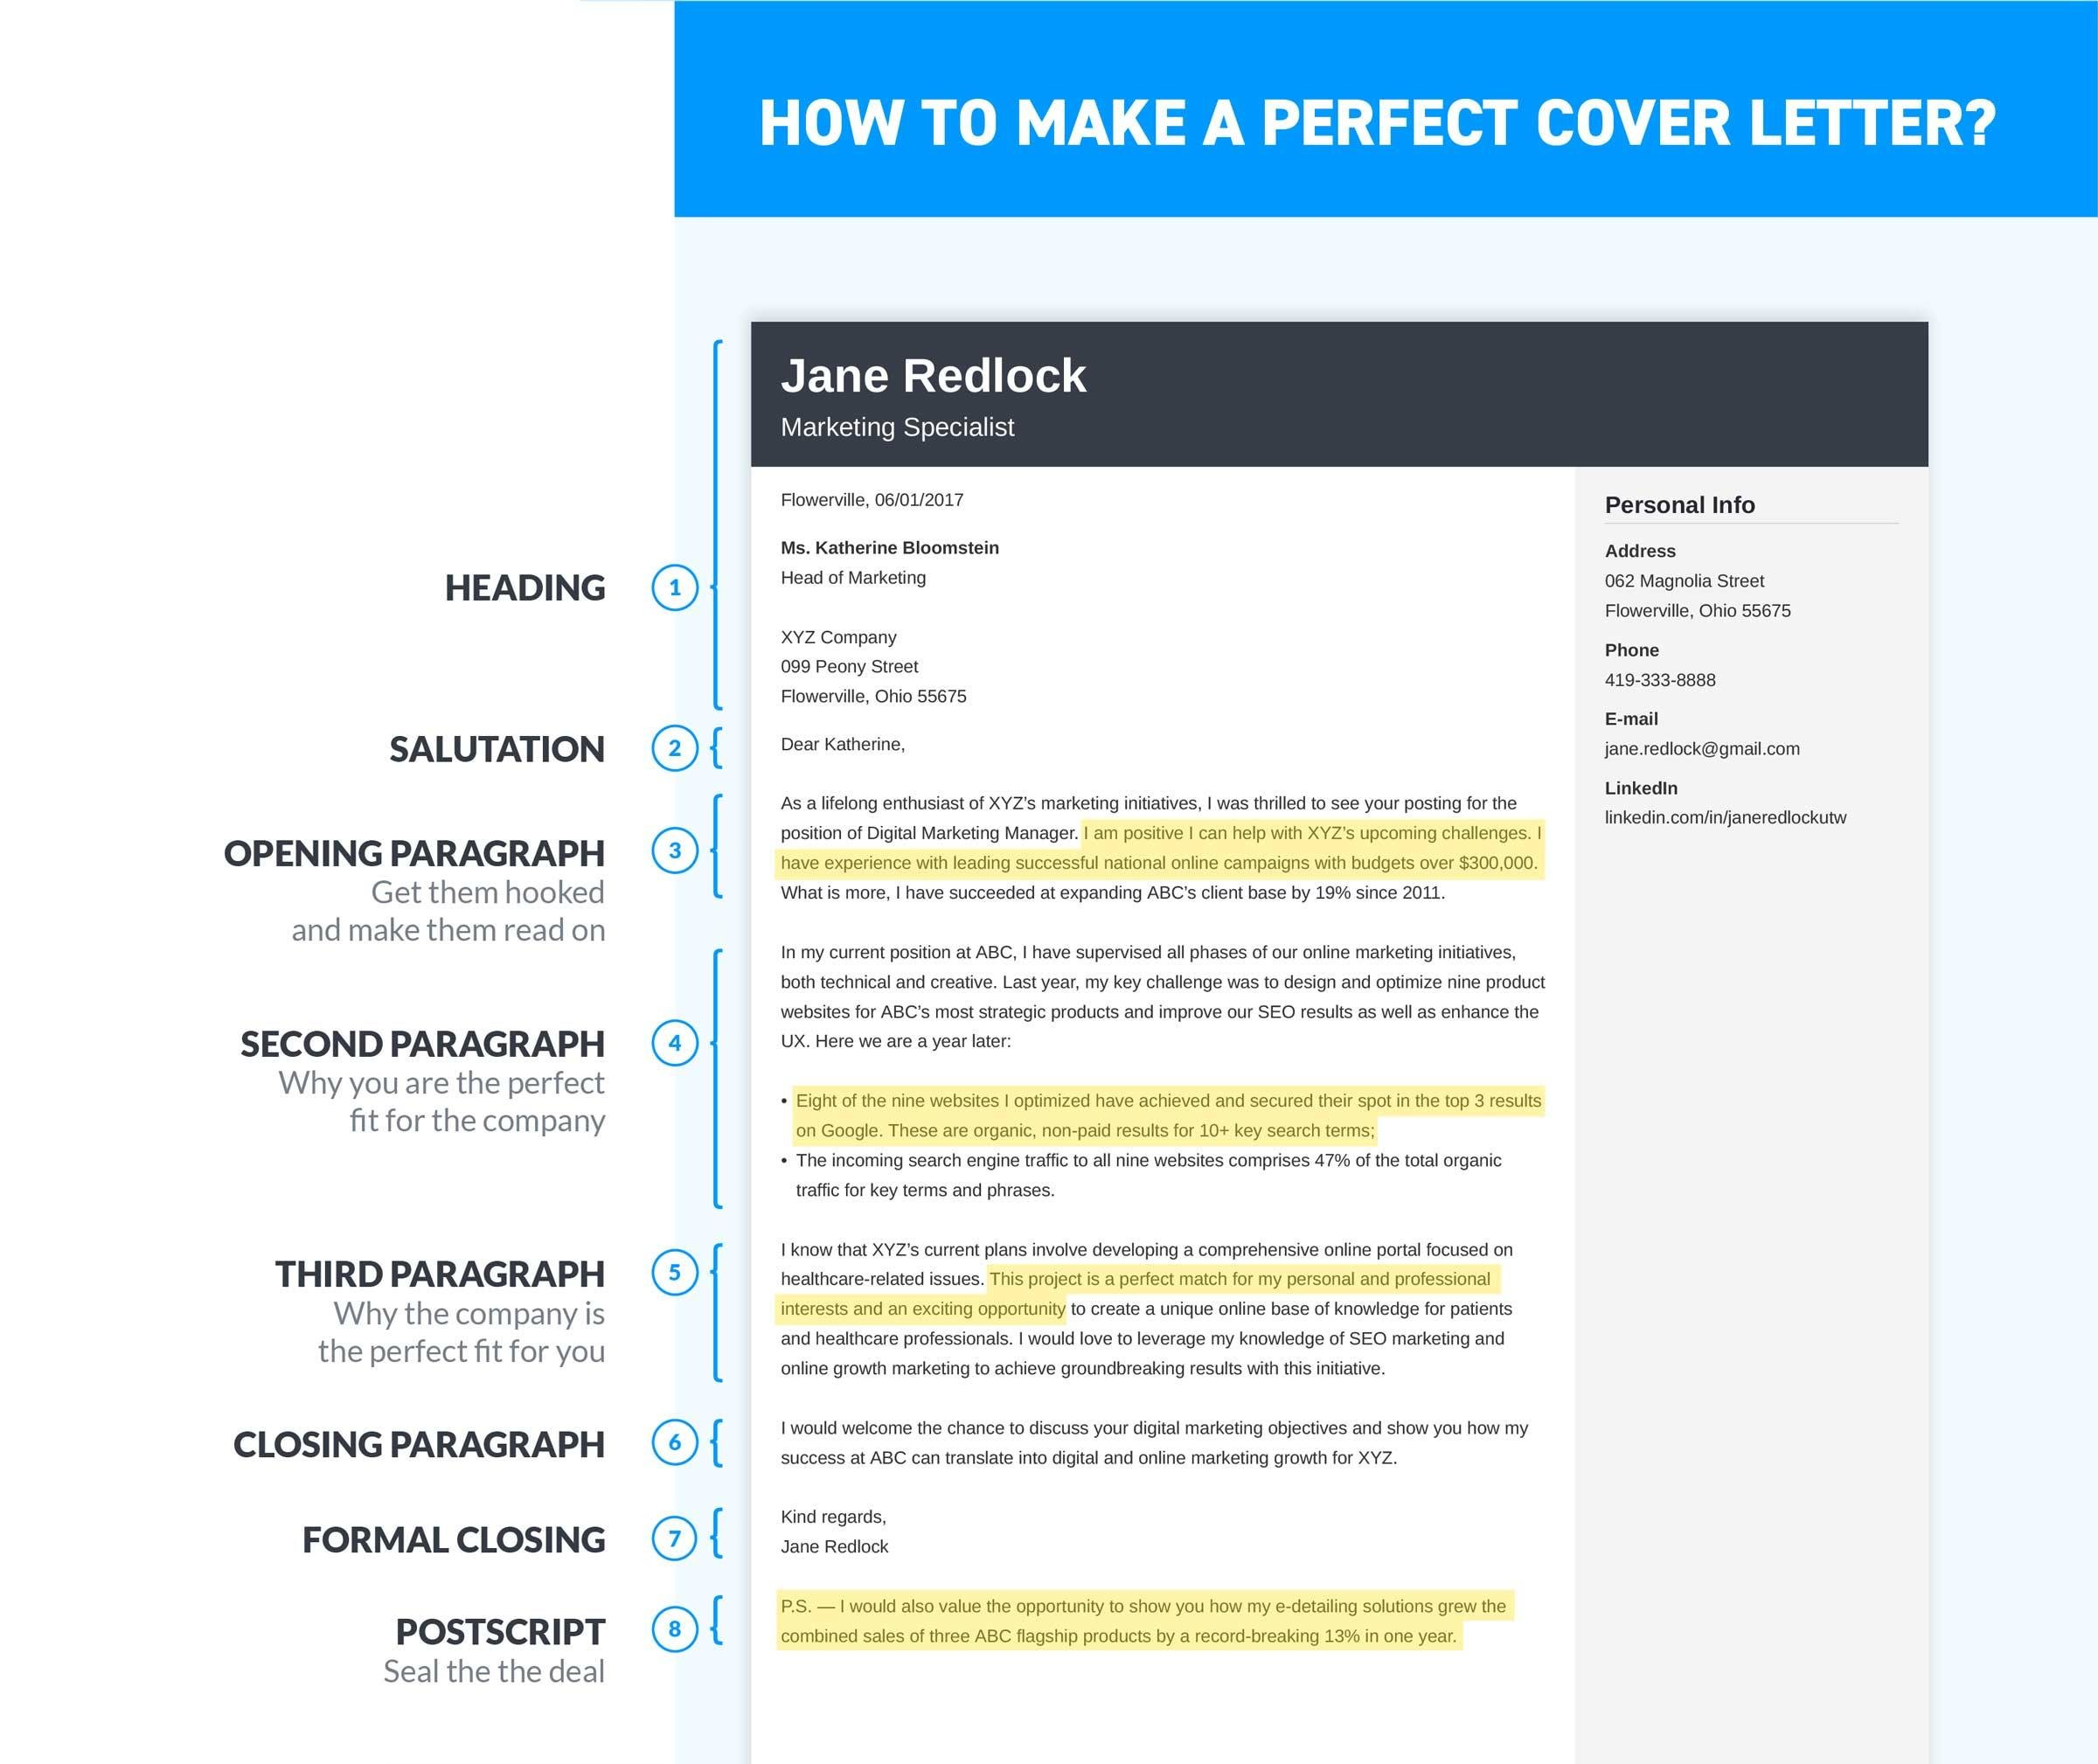 How To Make A Perfect Cover Letter Infographic  How To Write Cover Letter For A Job